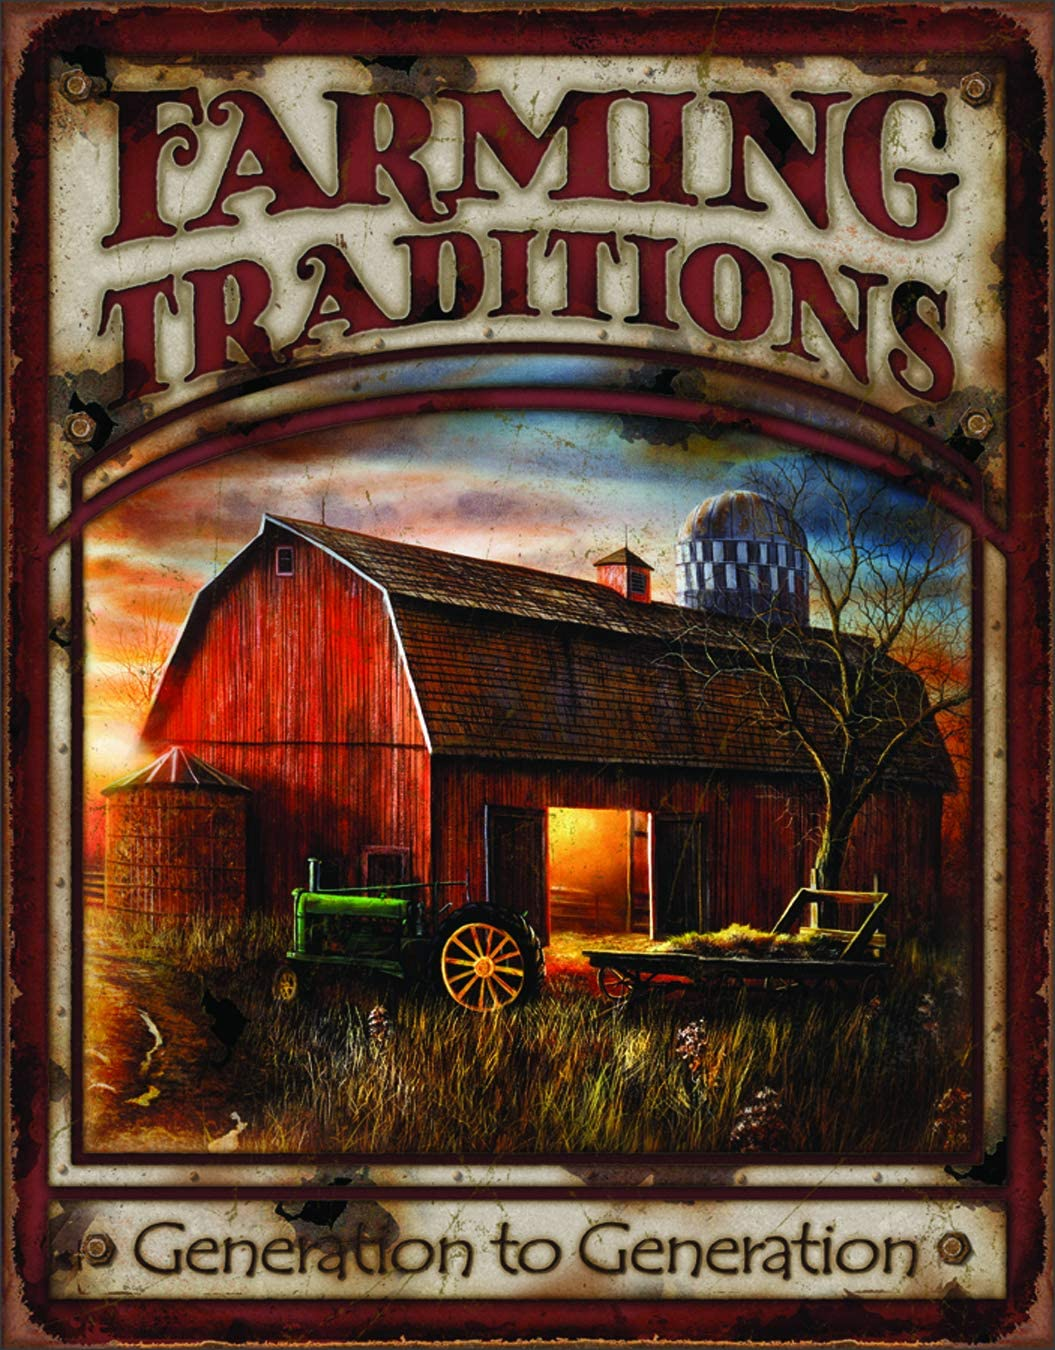 "Desperate Enterprises Farming Traditions Tin Sign, 12.5"" W x 16"" H"